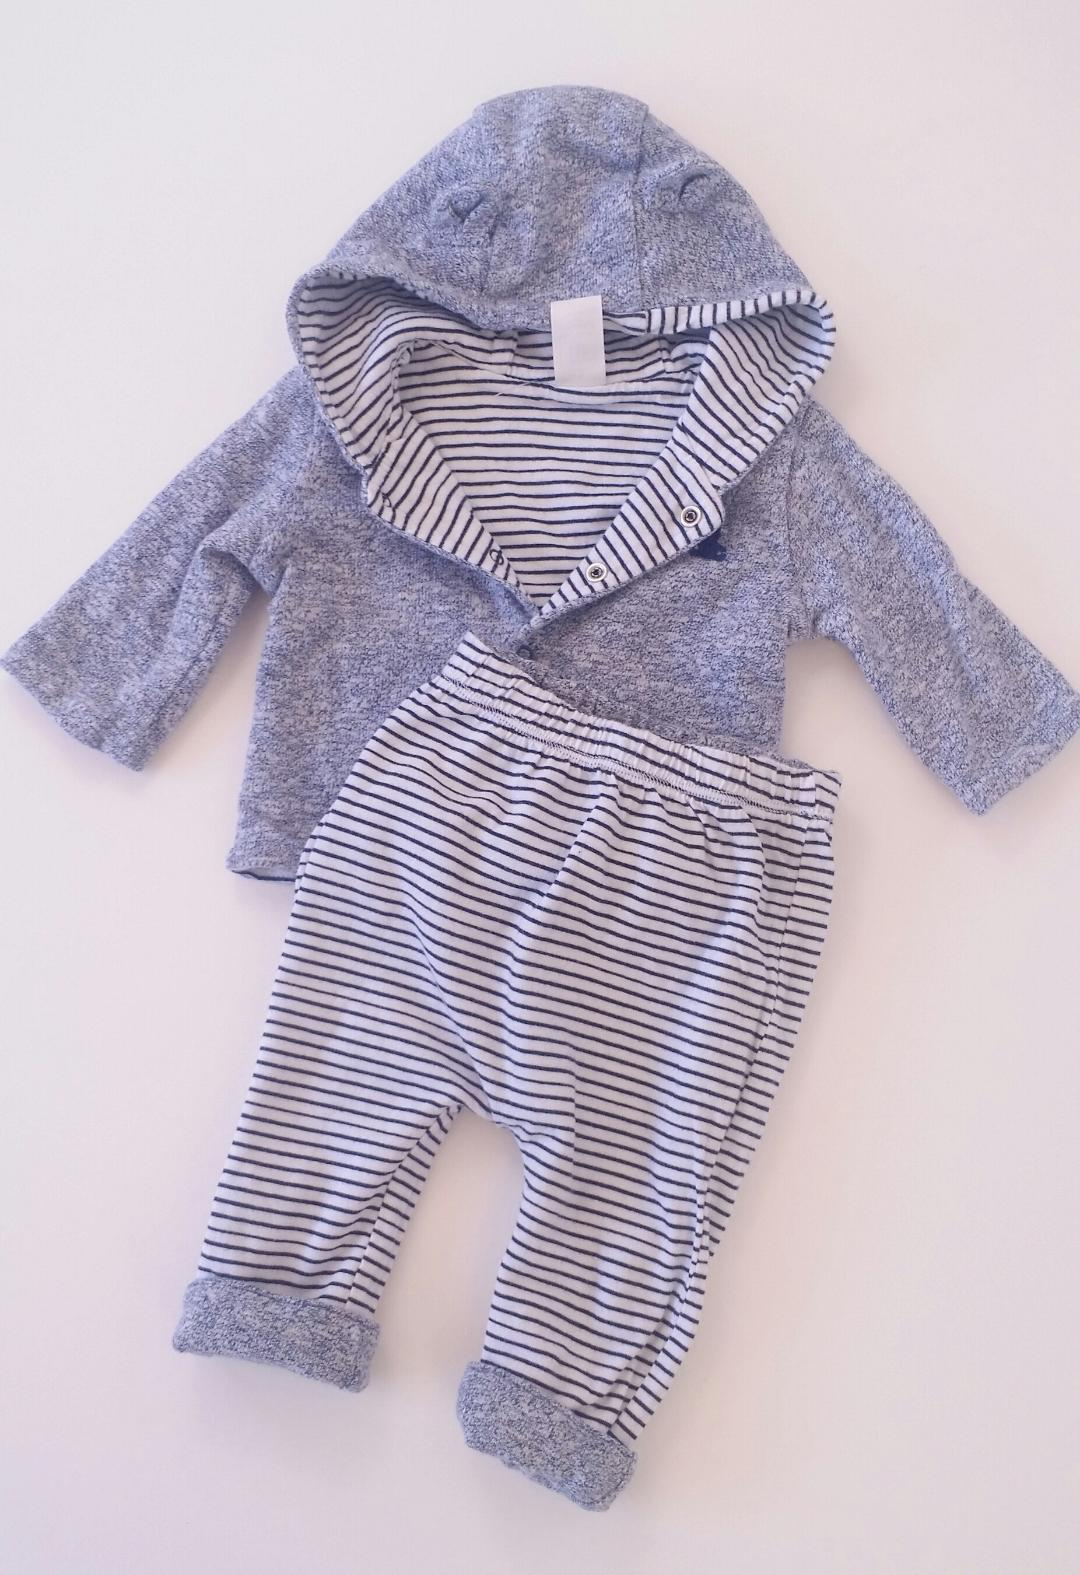 Gap-0-3-MONTHS-Reversible-Outfit_2218335C.jpg